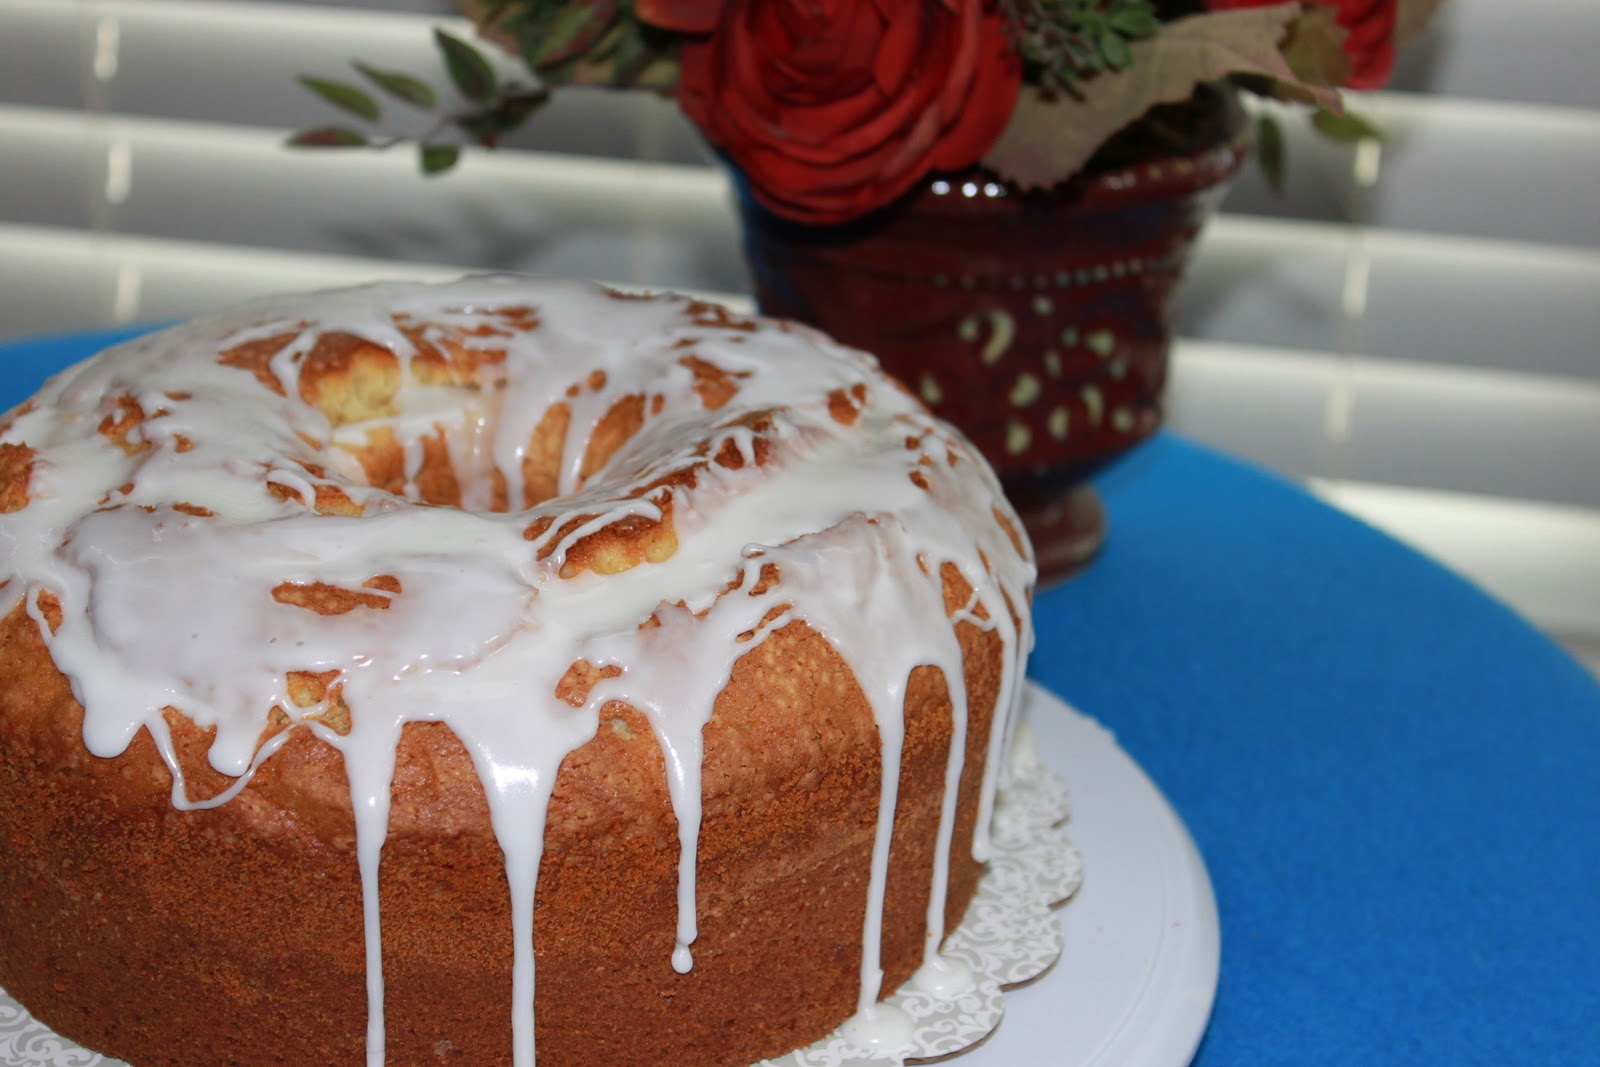 Lemon Pound Cake Lemon Pound Cake Ideas Lemon Pound Cake With